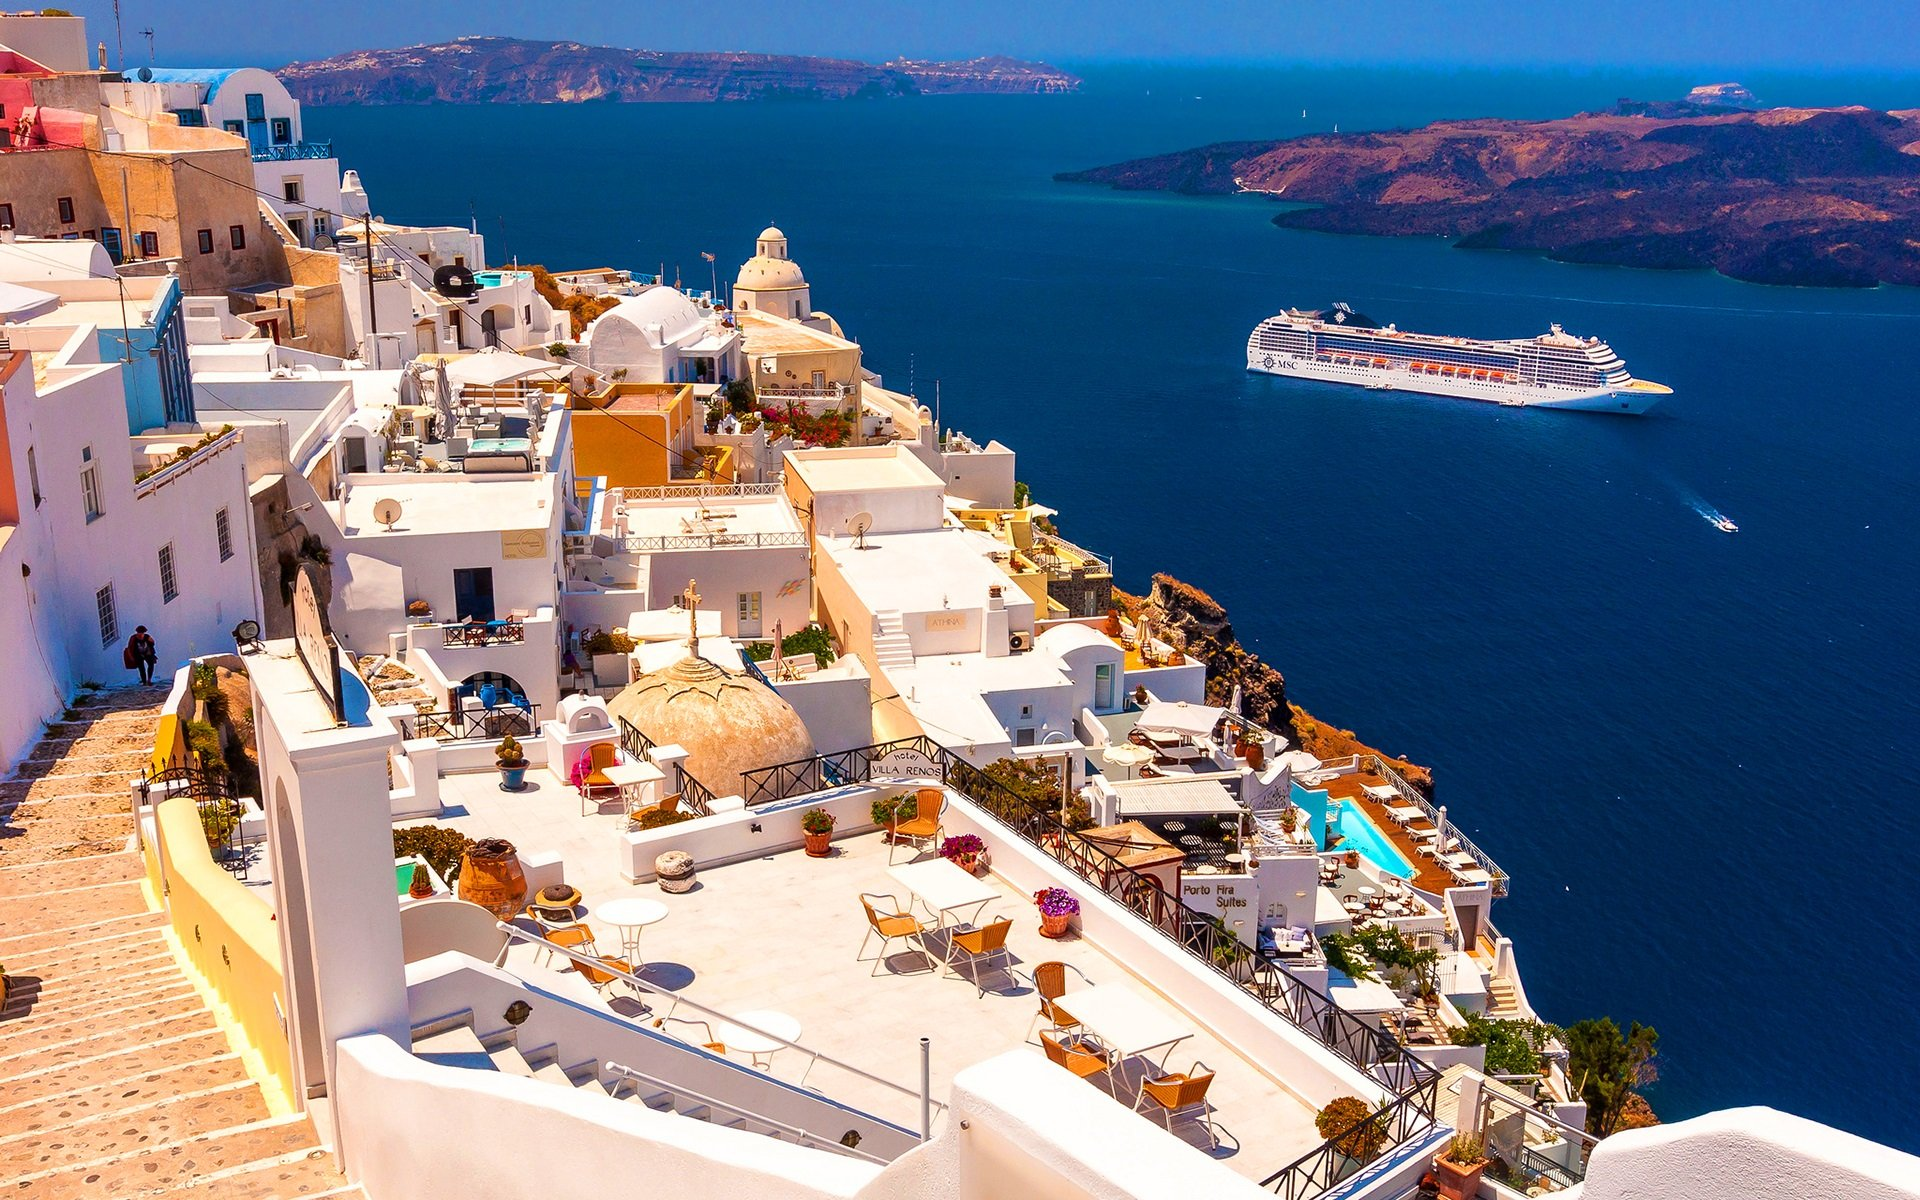 Wallpaper Santorini Greece houses sea ship sunshine 1920x1200 1920x1200